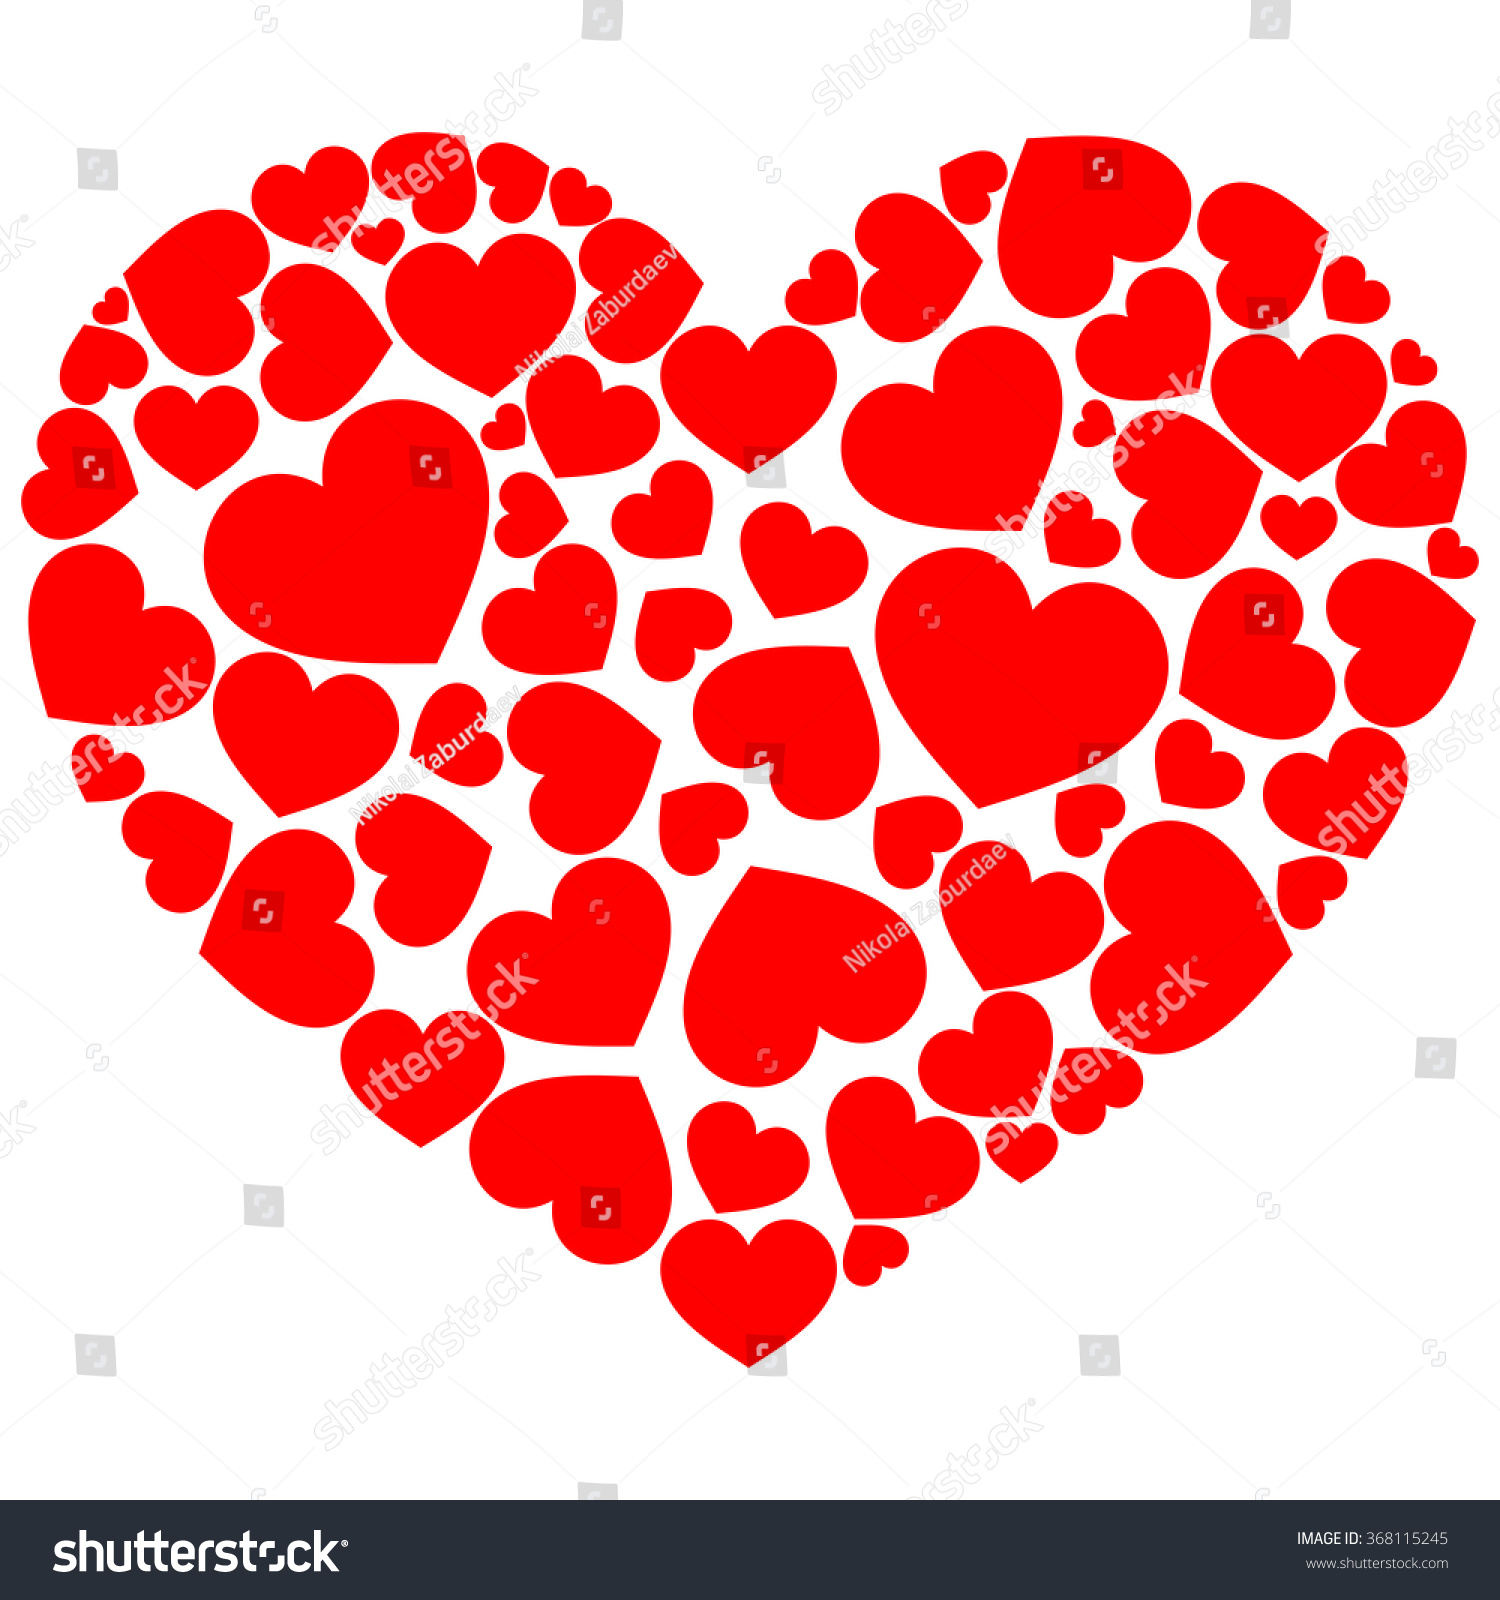 Big Heart Composed Small Hearts Stock Vector